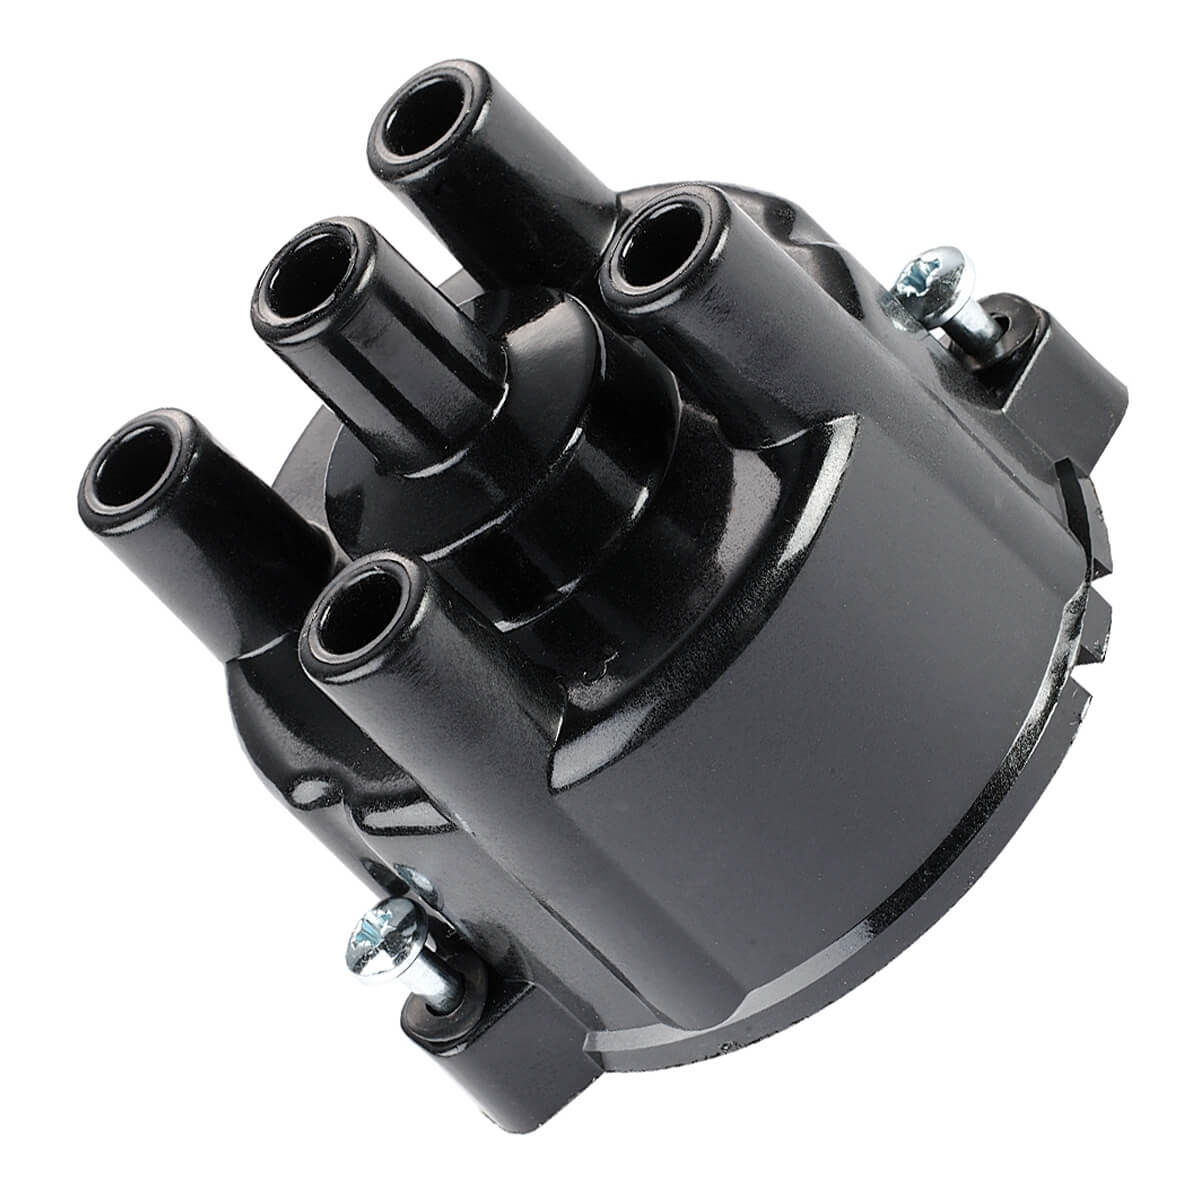 CITROEN C4 GRAND PICASSO Distributor Cap